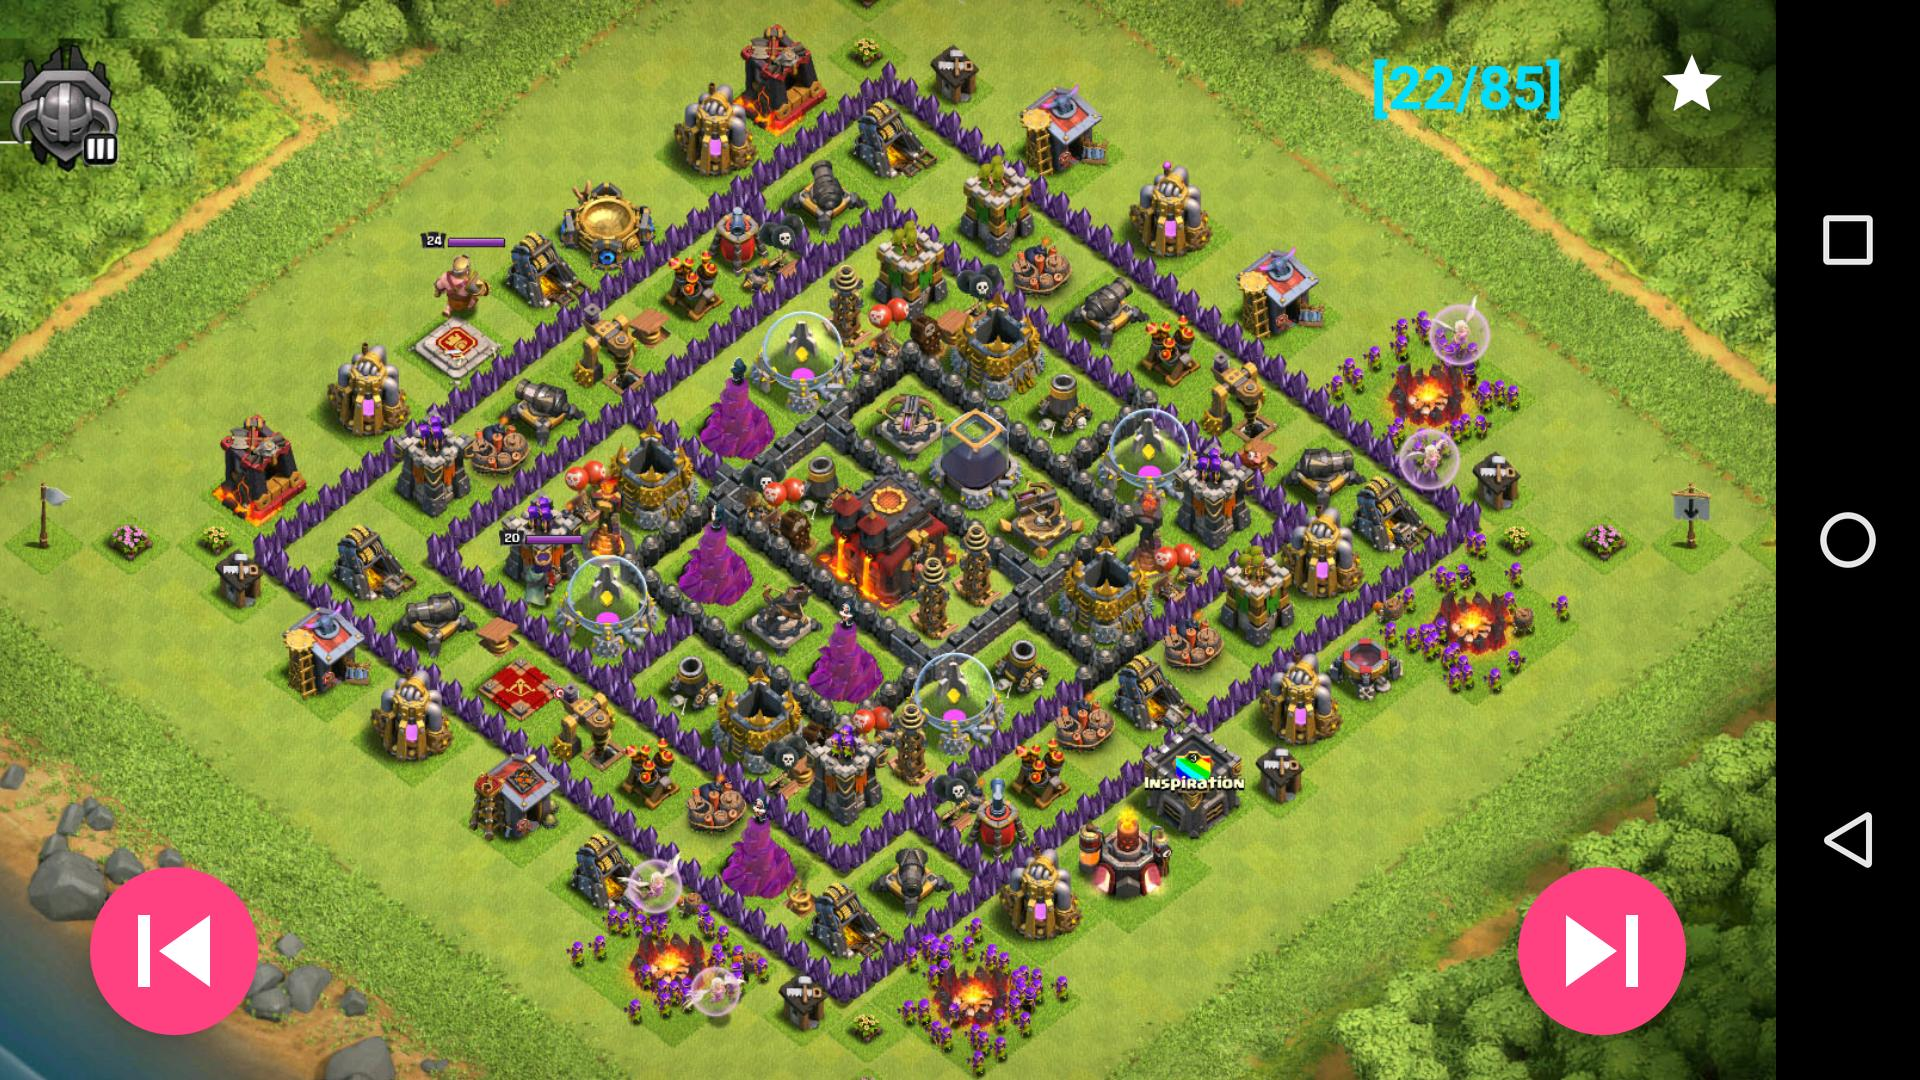 Maps of Clash Of Clans for Android - APK Download Map Clash Of Clans on dragon's dogma map, planetside 2 map, five nights at freddy's map, battlefield: bad company 2 map, clash clans minecraft, clash of calns, clash clans bases, league of legends map, grand theft auto iii map, clash of clan crystal, clash clans best, grand theft auto: san andreas map, far cry 3 map, clash of craft, boom beach map,